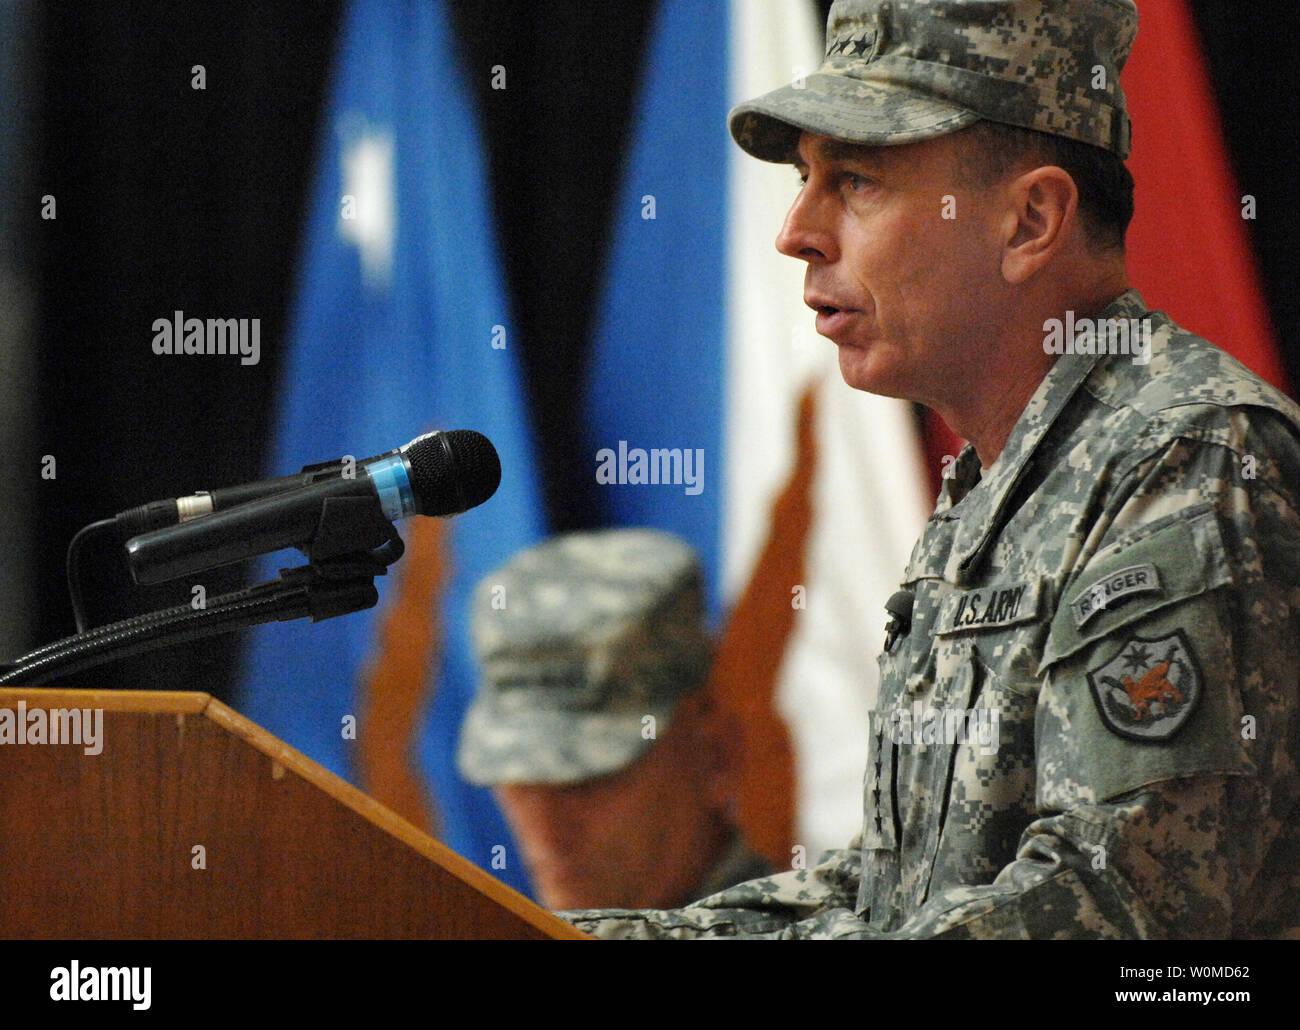 Outgoing Multi-National Force-Iraq Commander U.S. Army Gen. David Petraeus speaks during the change-of-command ceremony at the Al Faw Palace in Baghdad, on September 16, 2008. Gen. Odierno is taking over control of the Multi-National Force Iraq while Gen. Petraeus will be the new commander of U.S. Central Command. (UPI Photo/Adam M. Stump/DOD) Stock Photo